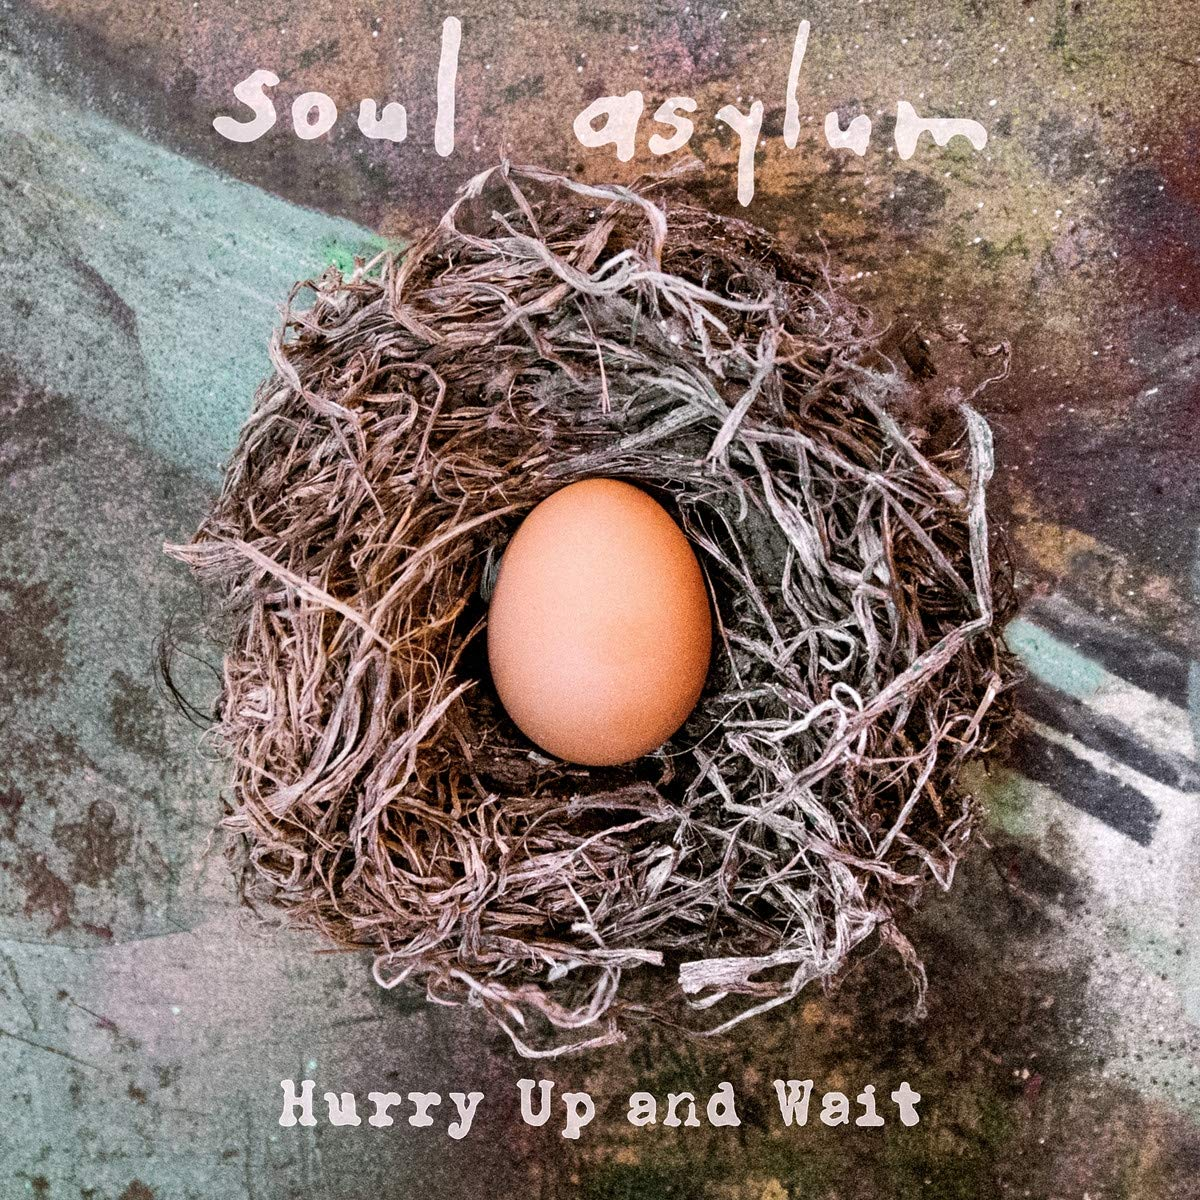 Soul Asylum: Hurry Up And Wait [Album Review]